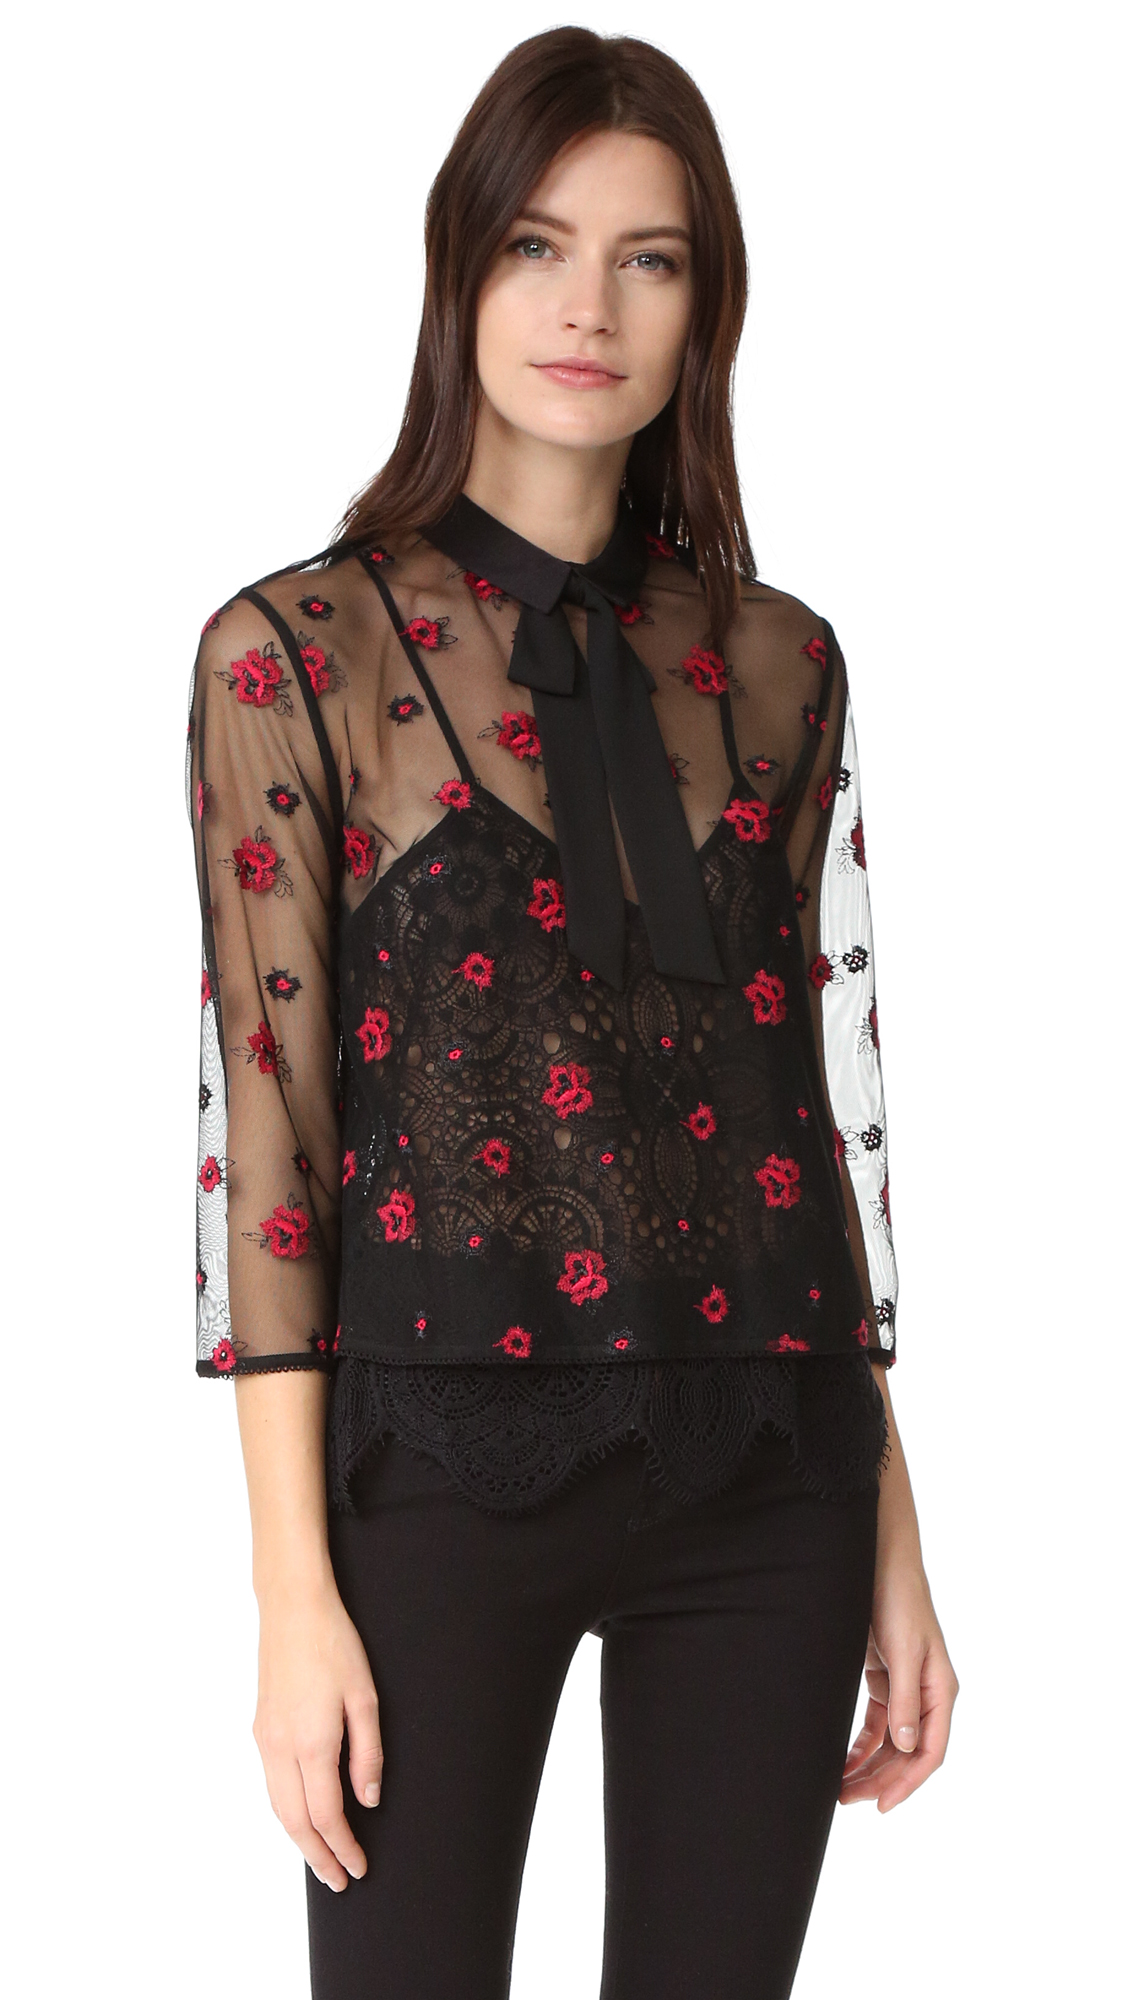 Bold floral embroidery details this delicate mesh The Kooples blouse. A fixed bow details the structured fold over collar. Optional lace camisole lining. 3/4 sleeves. Hidden back zip. Sheer. Fabric: Mesh. Shell: 100% polyester. Lining: 65% cotton/35% polyamide. Dry